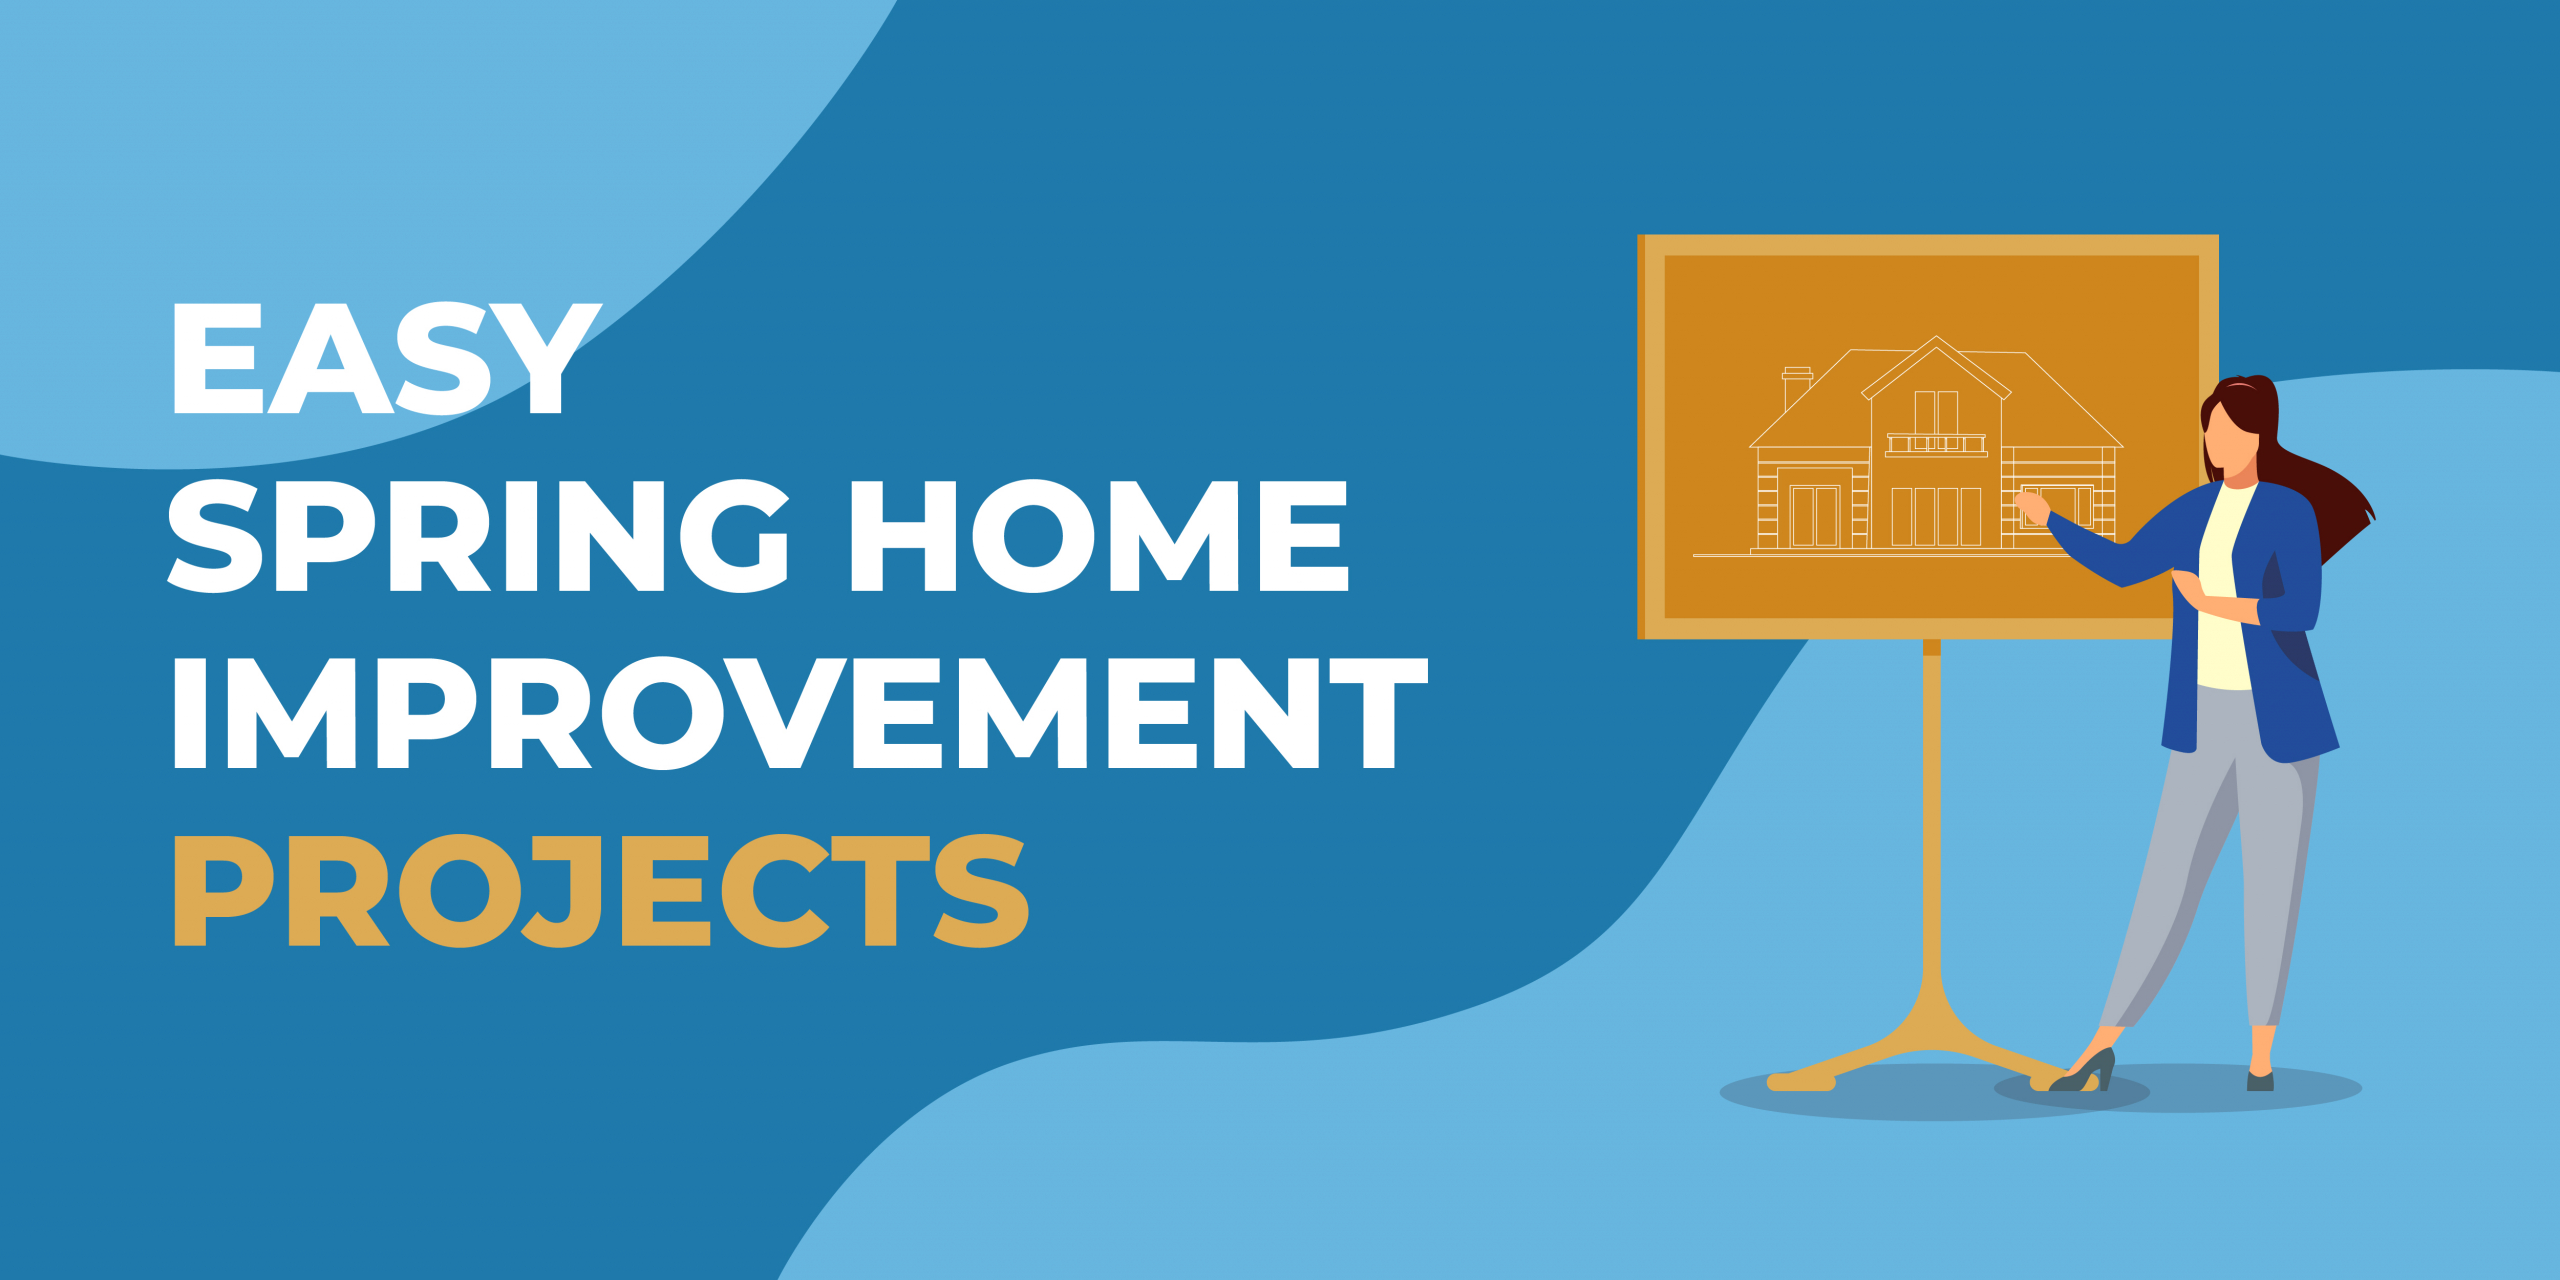 Easy Spring Home Improvement Projects